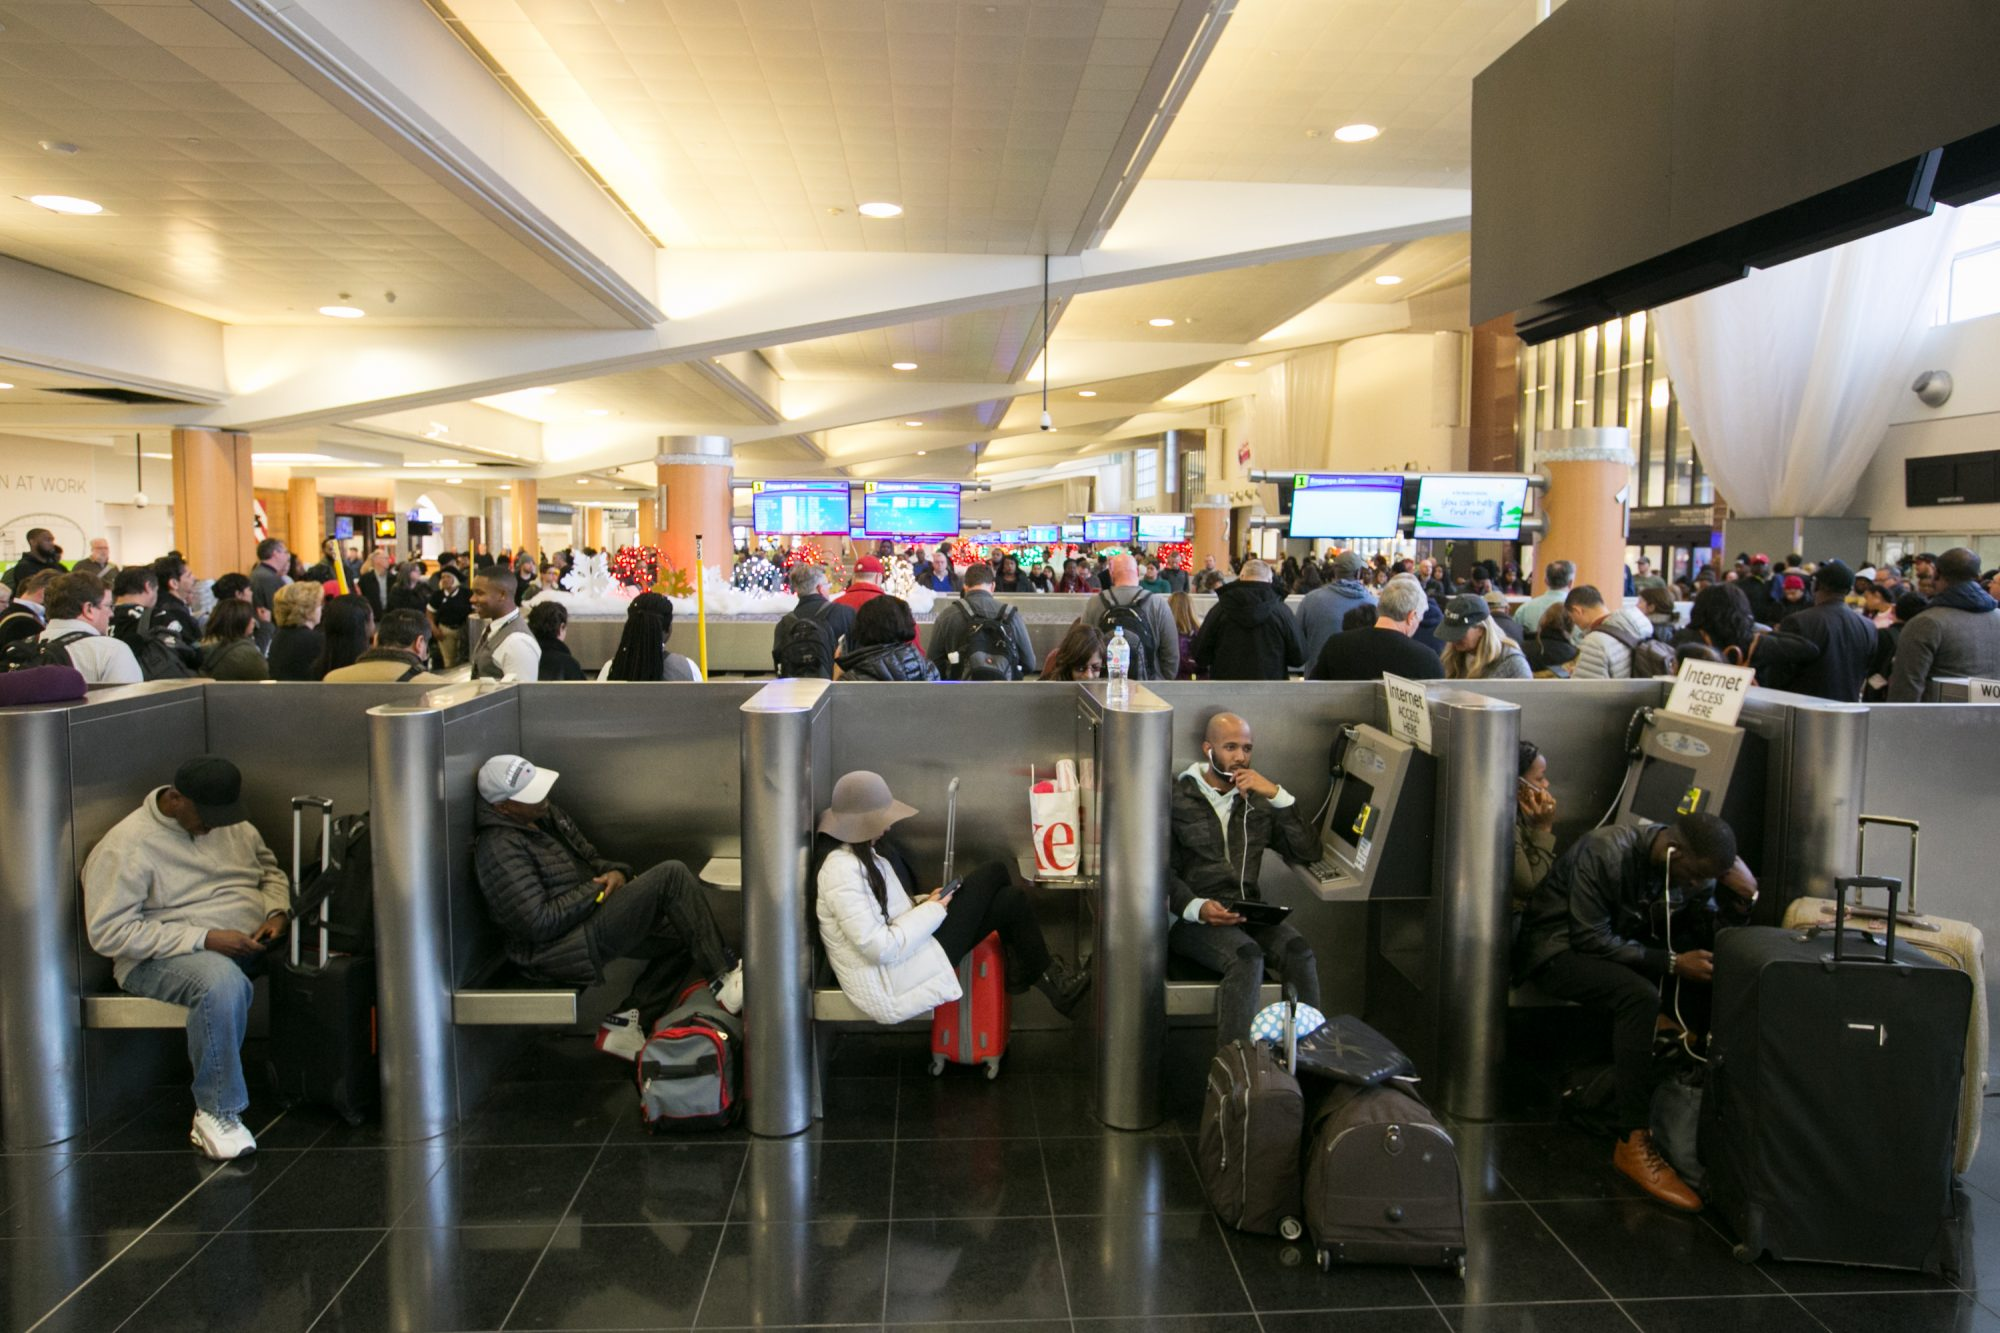 Hundreds Of Flights Cancelled After Power Outage At Atlanta Hartsfield Airport